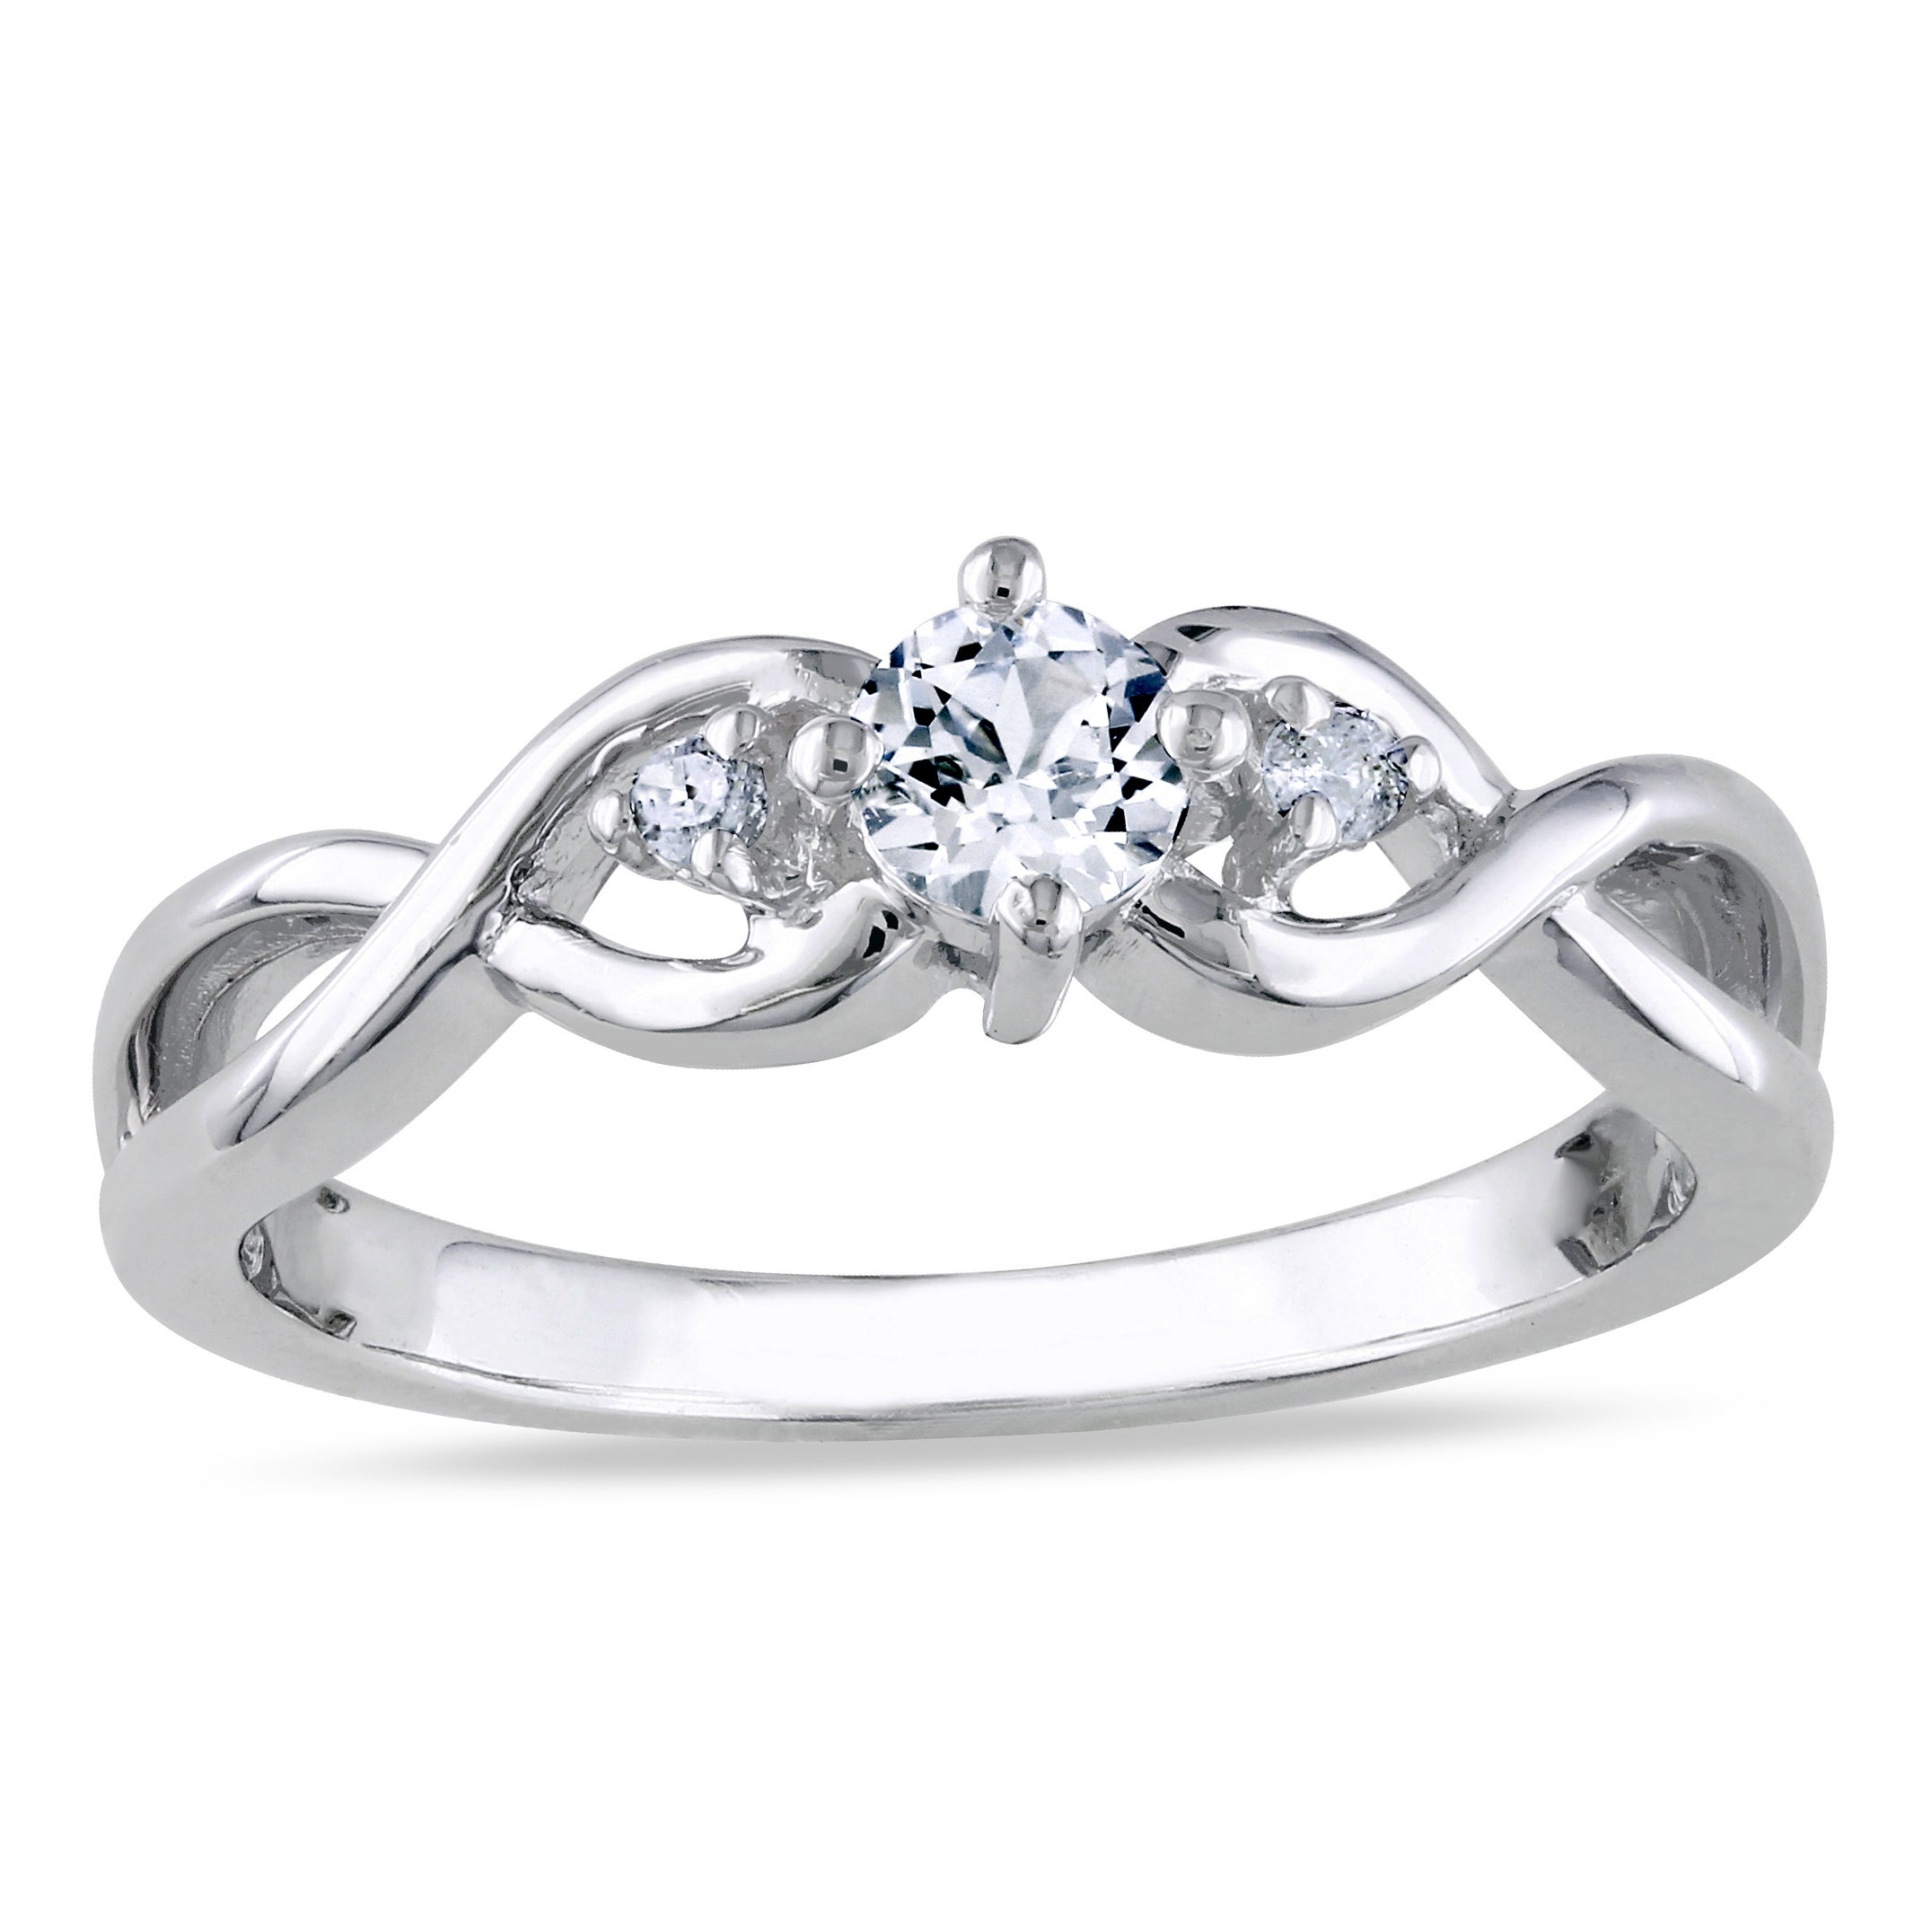 ring infinity created g and walmart promise com silver miabella sterling w white carat rings t engagement sapphire ip